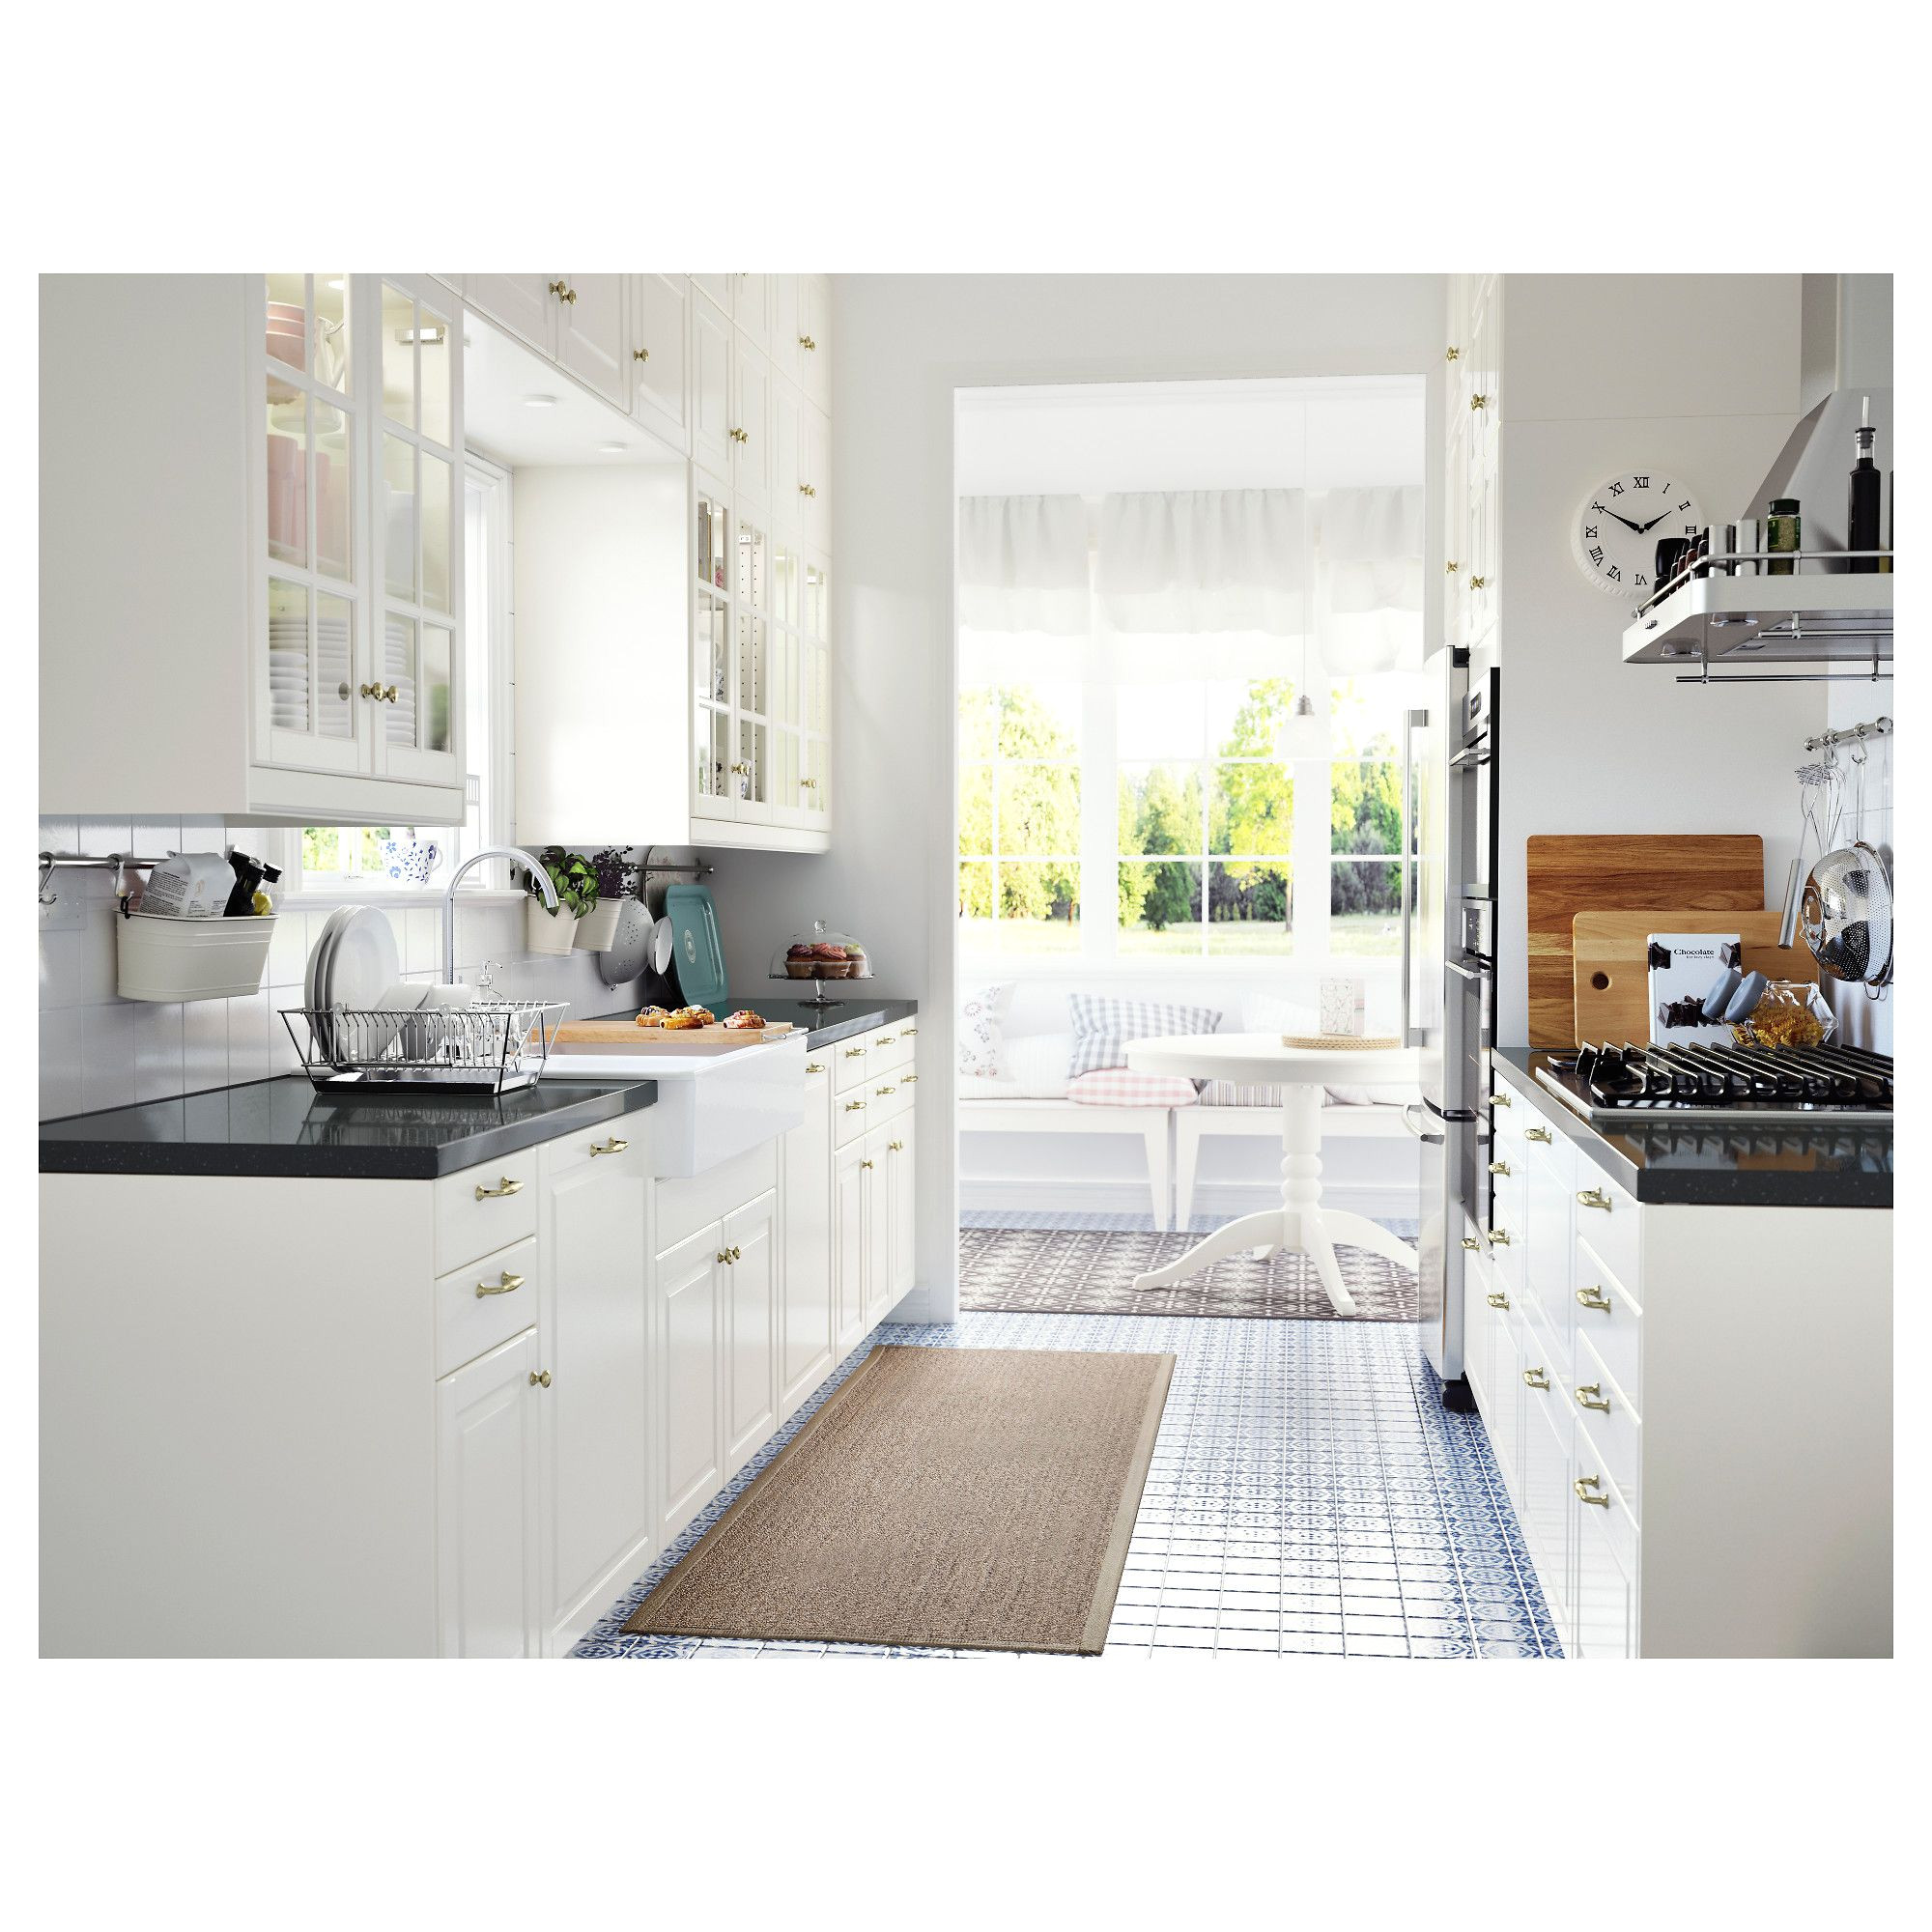 ikea bodbyn door 18x30 bodbyn door has a frame and a bevelled panel that give it a distinct traditional character creamy off white brings a